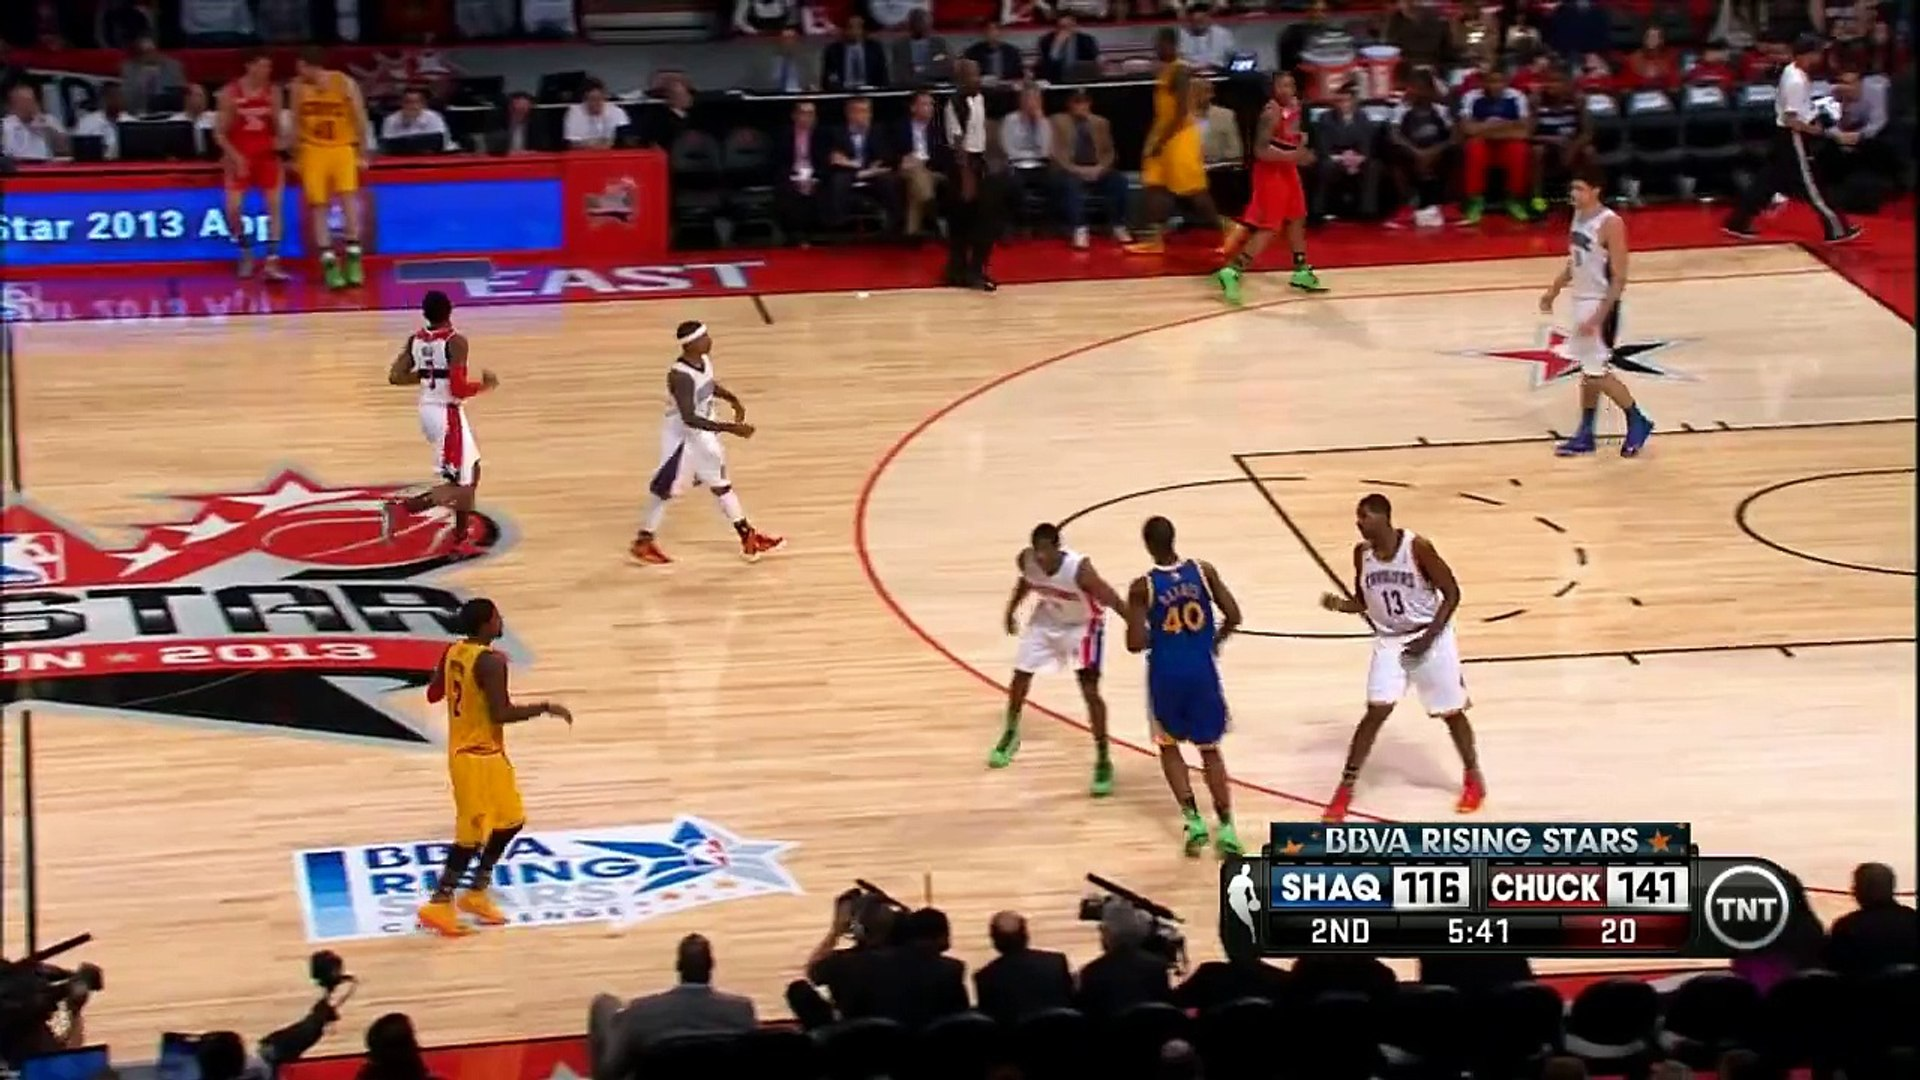 Kyrie Irving's ankle-breaking moves on Knight! - video Dailymotion